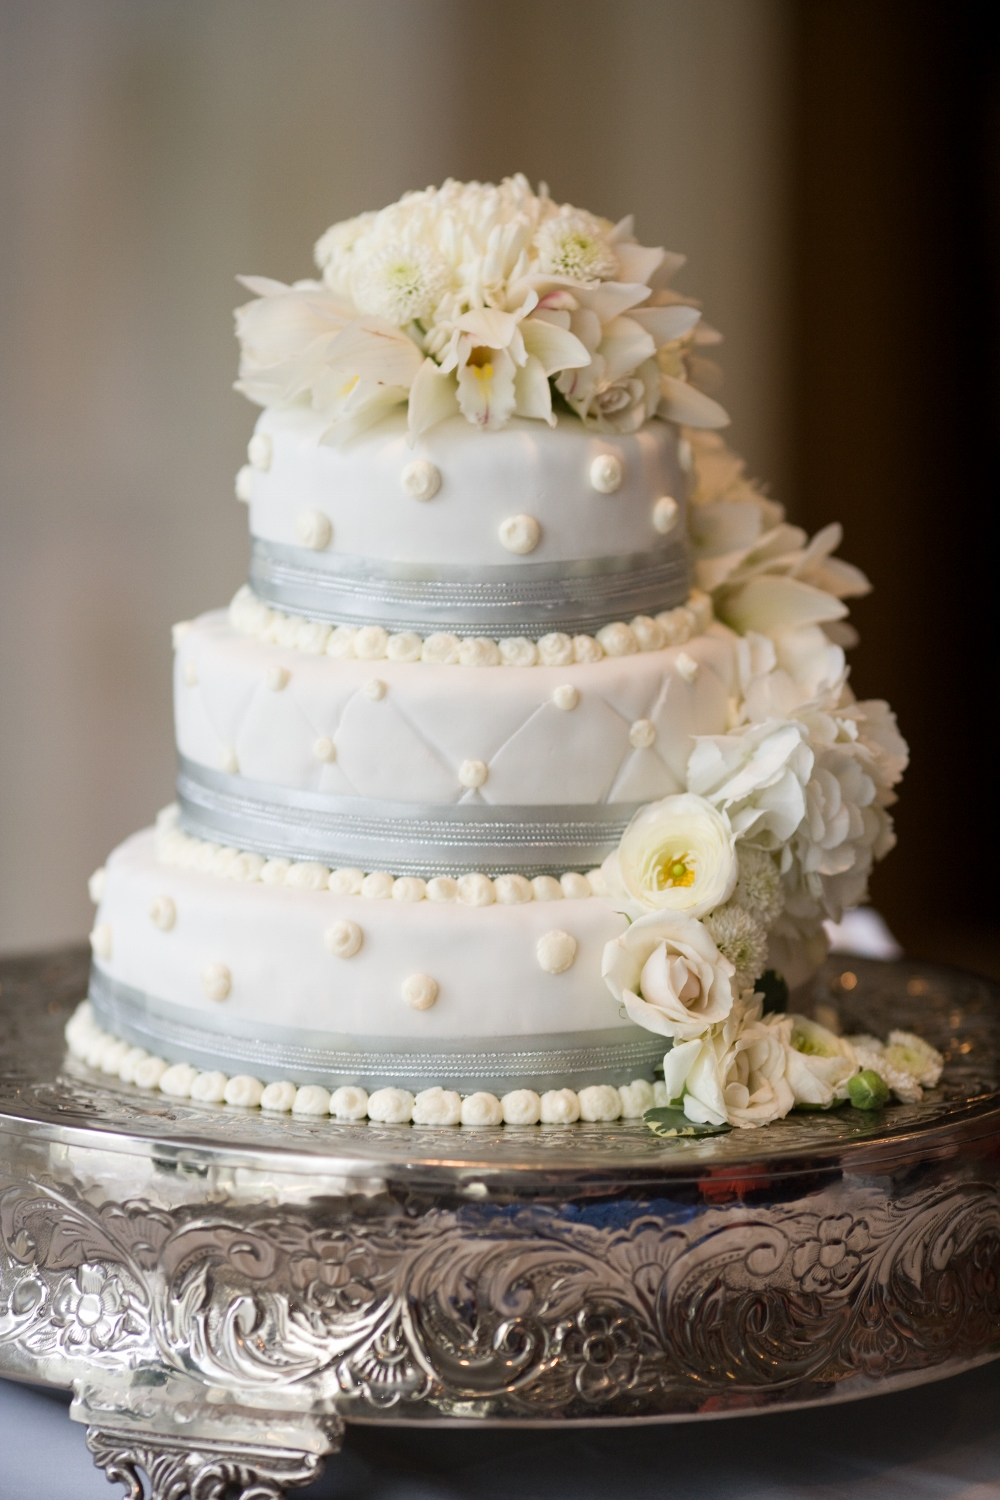 Fresh Flowers on Wedding Cake, White Wedding Cake with Flowers ...